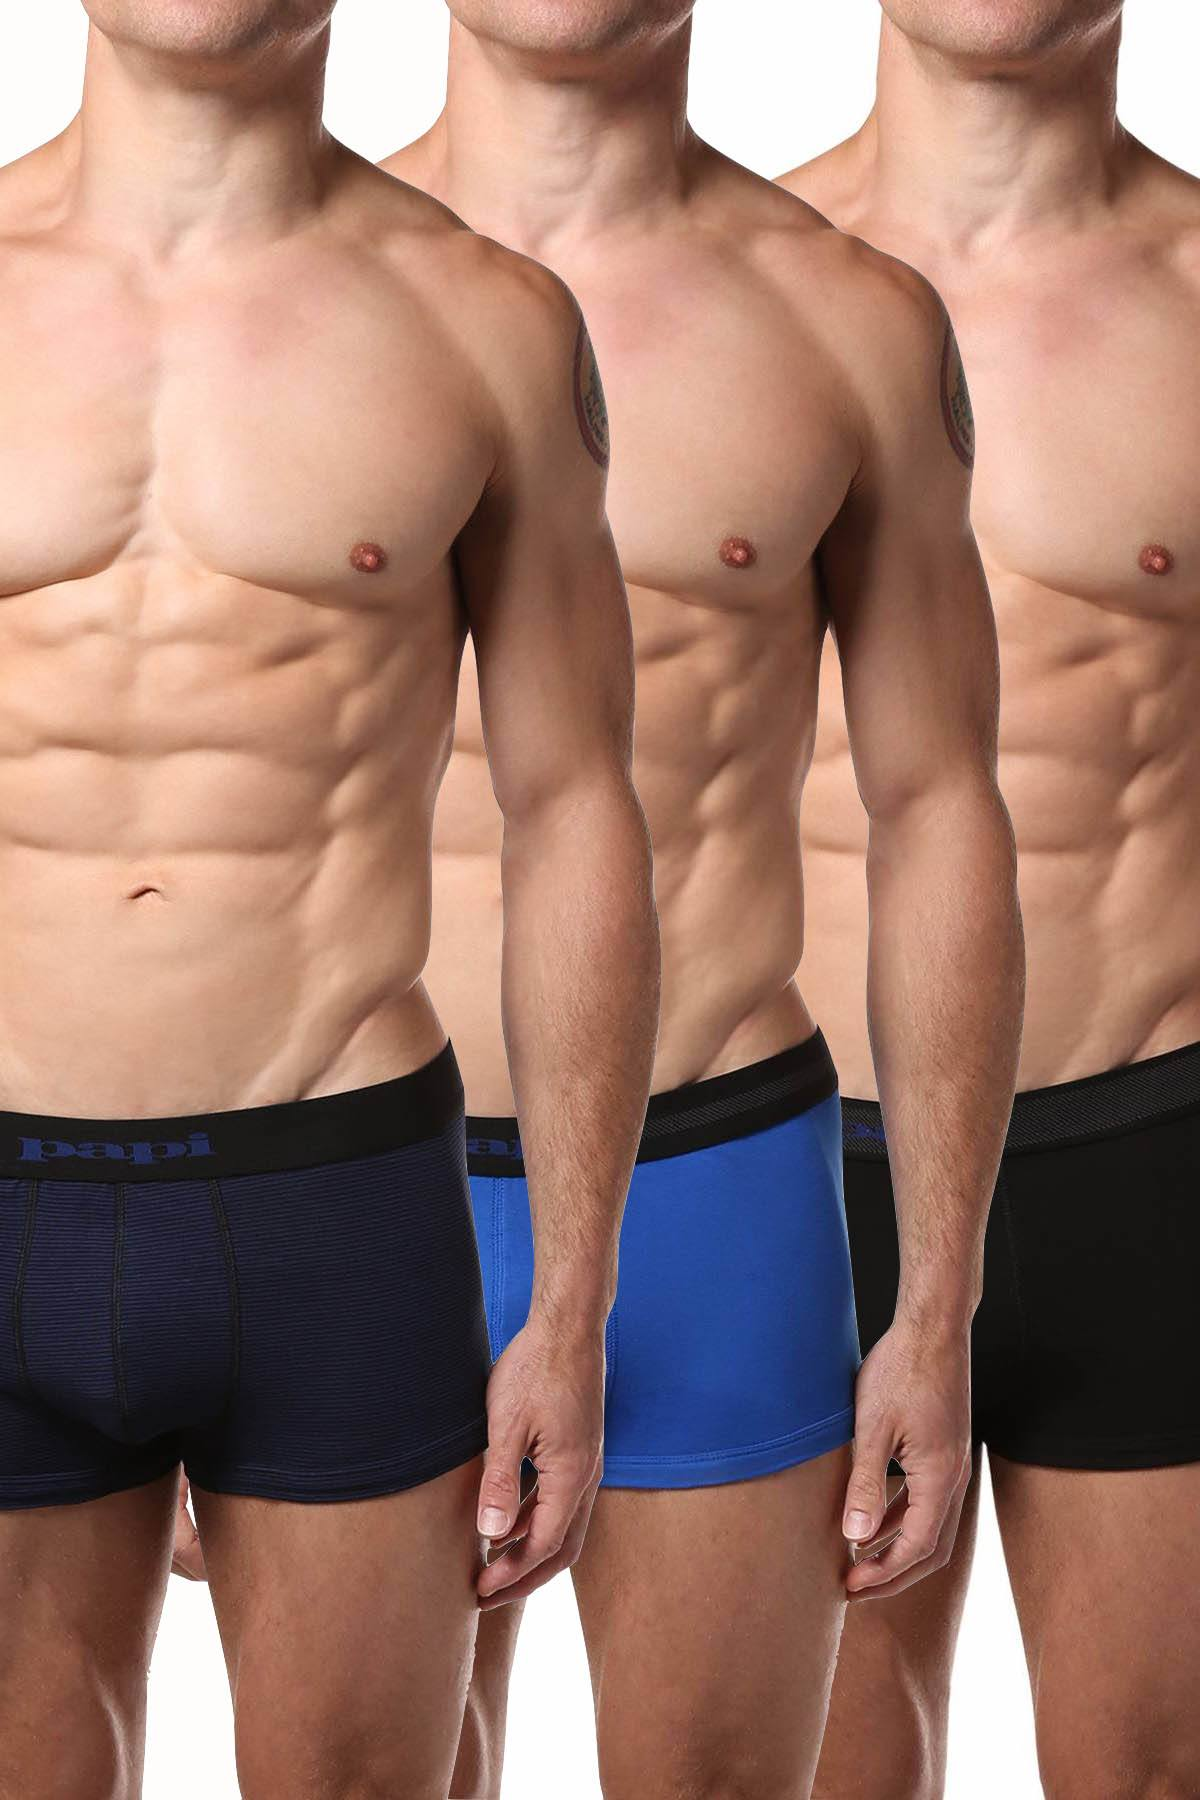 Arnold Gym Olympic Series Trunks Microfiber Underwear Pack of 2 Black Boxer